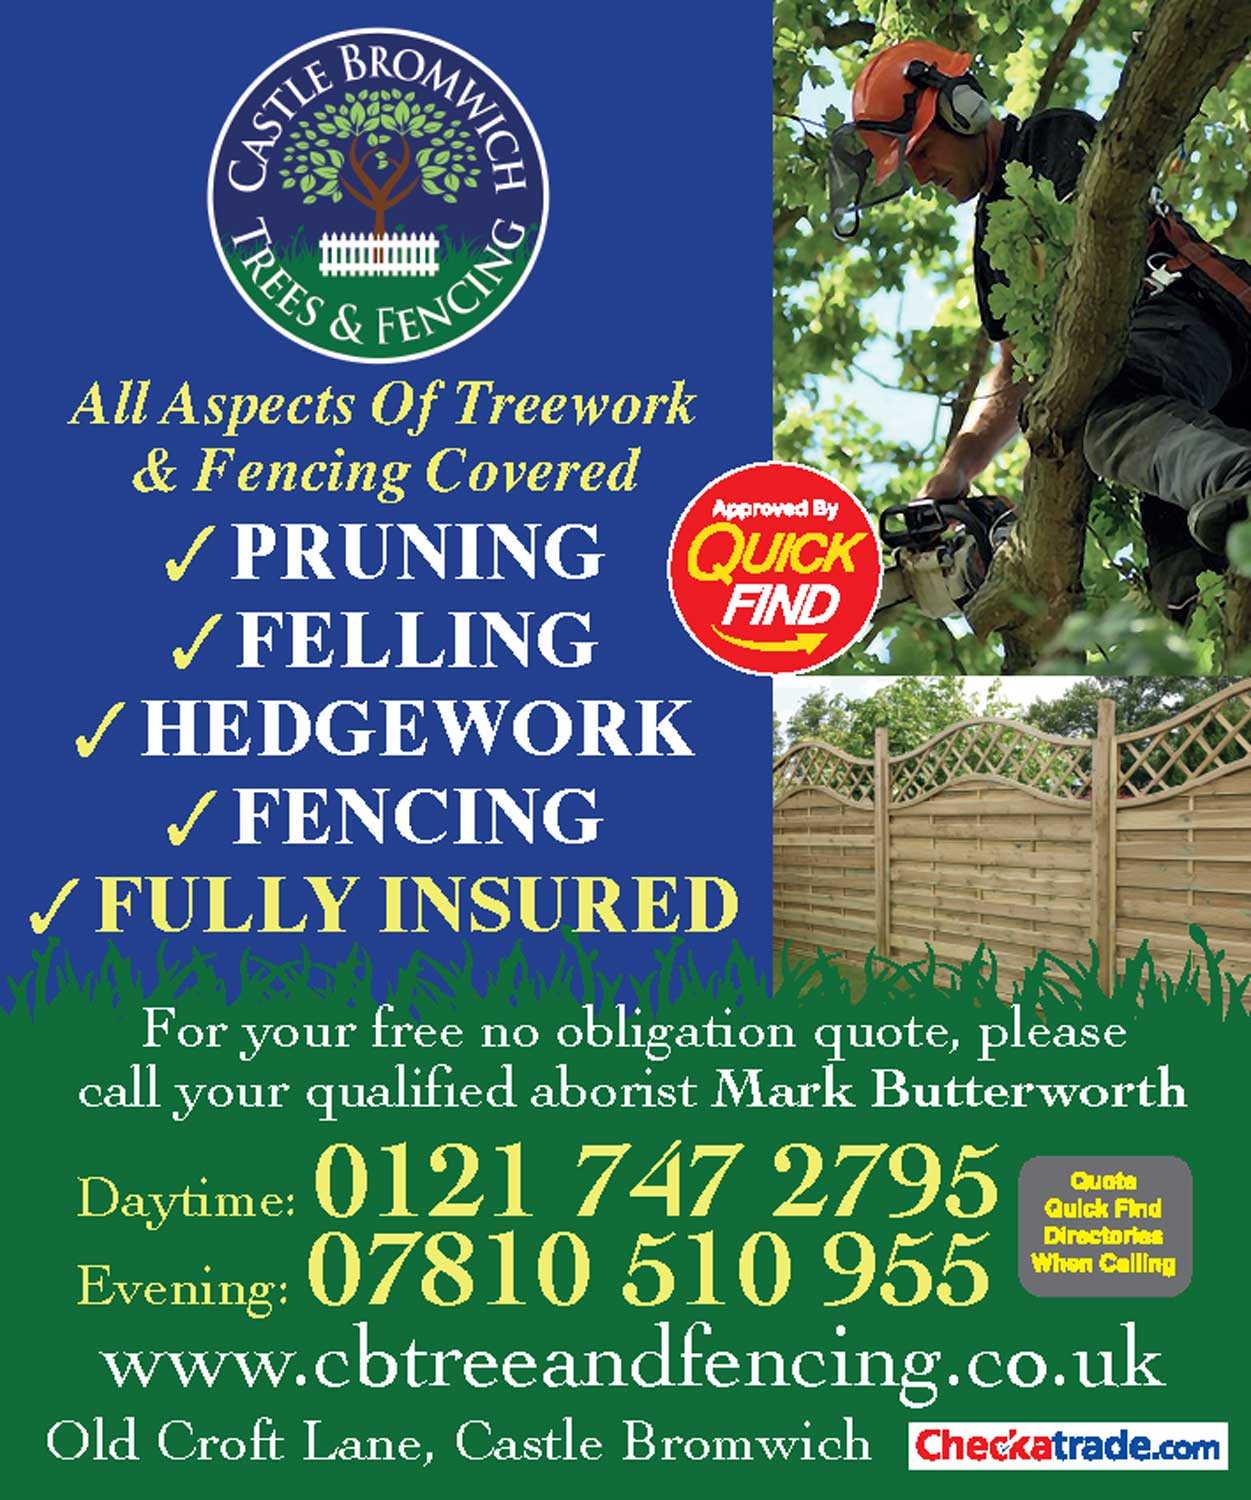 Castle Bromwich Trees & Fencing